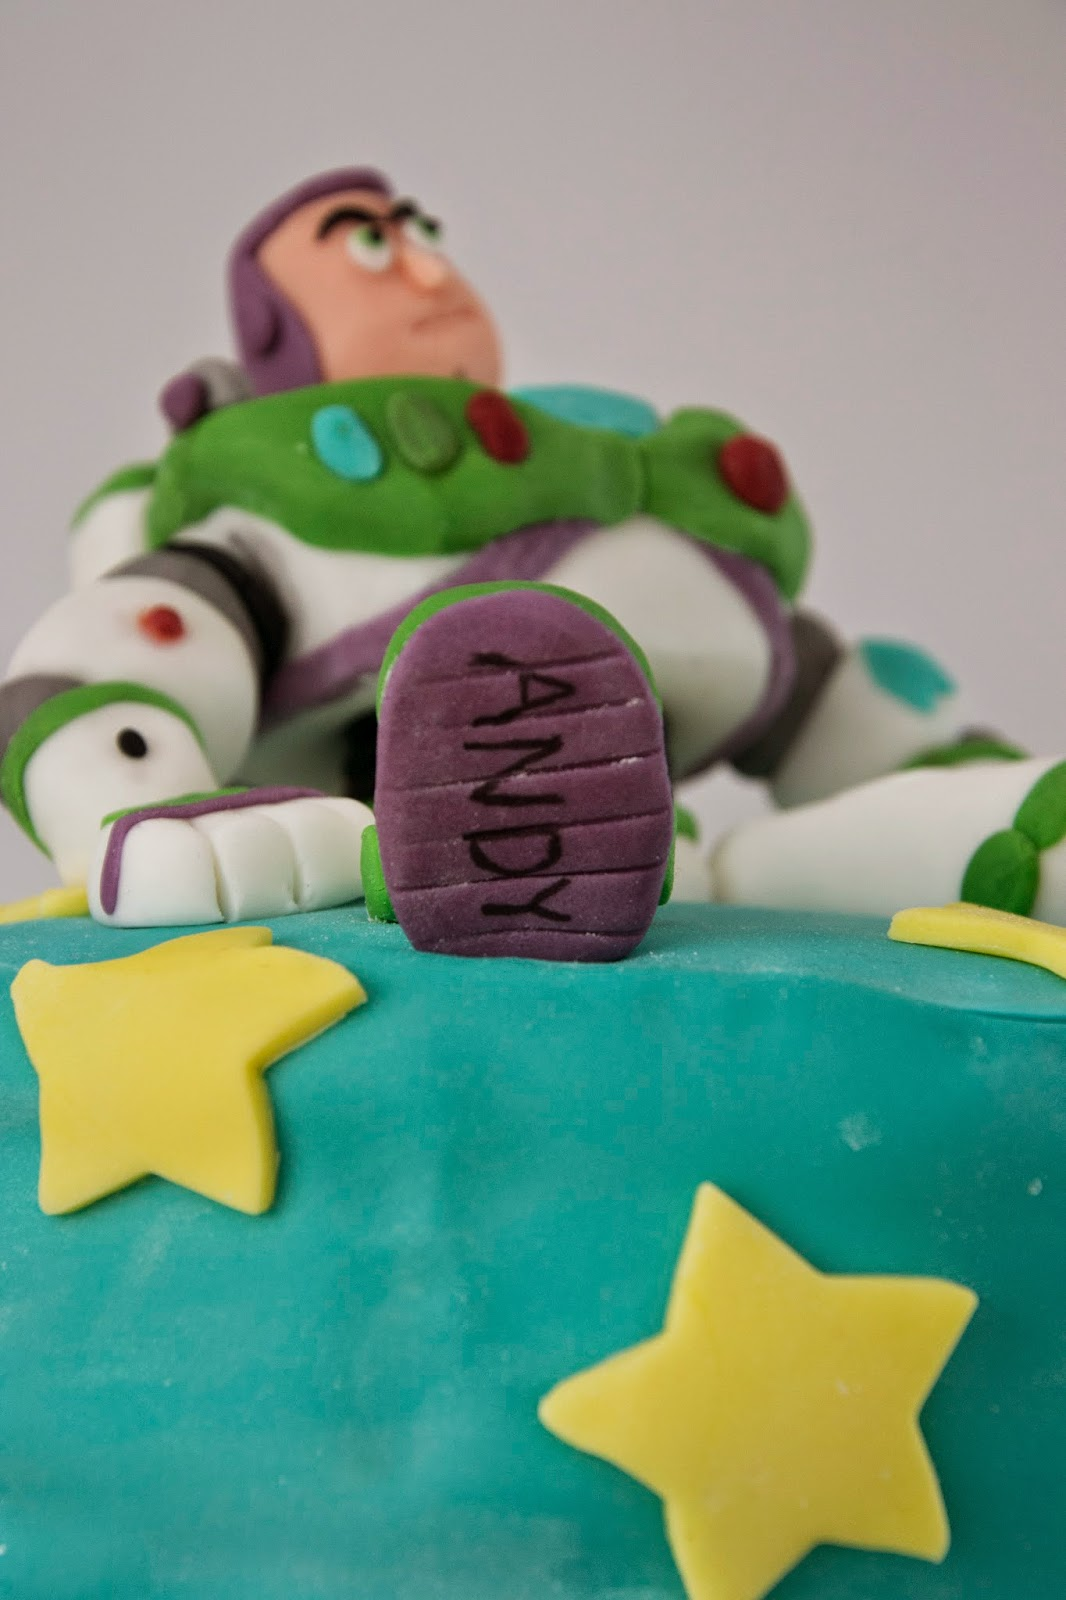 Buzz Lightyear Cake Andy Written on the foot